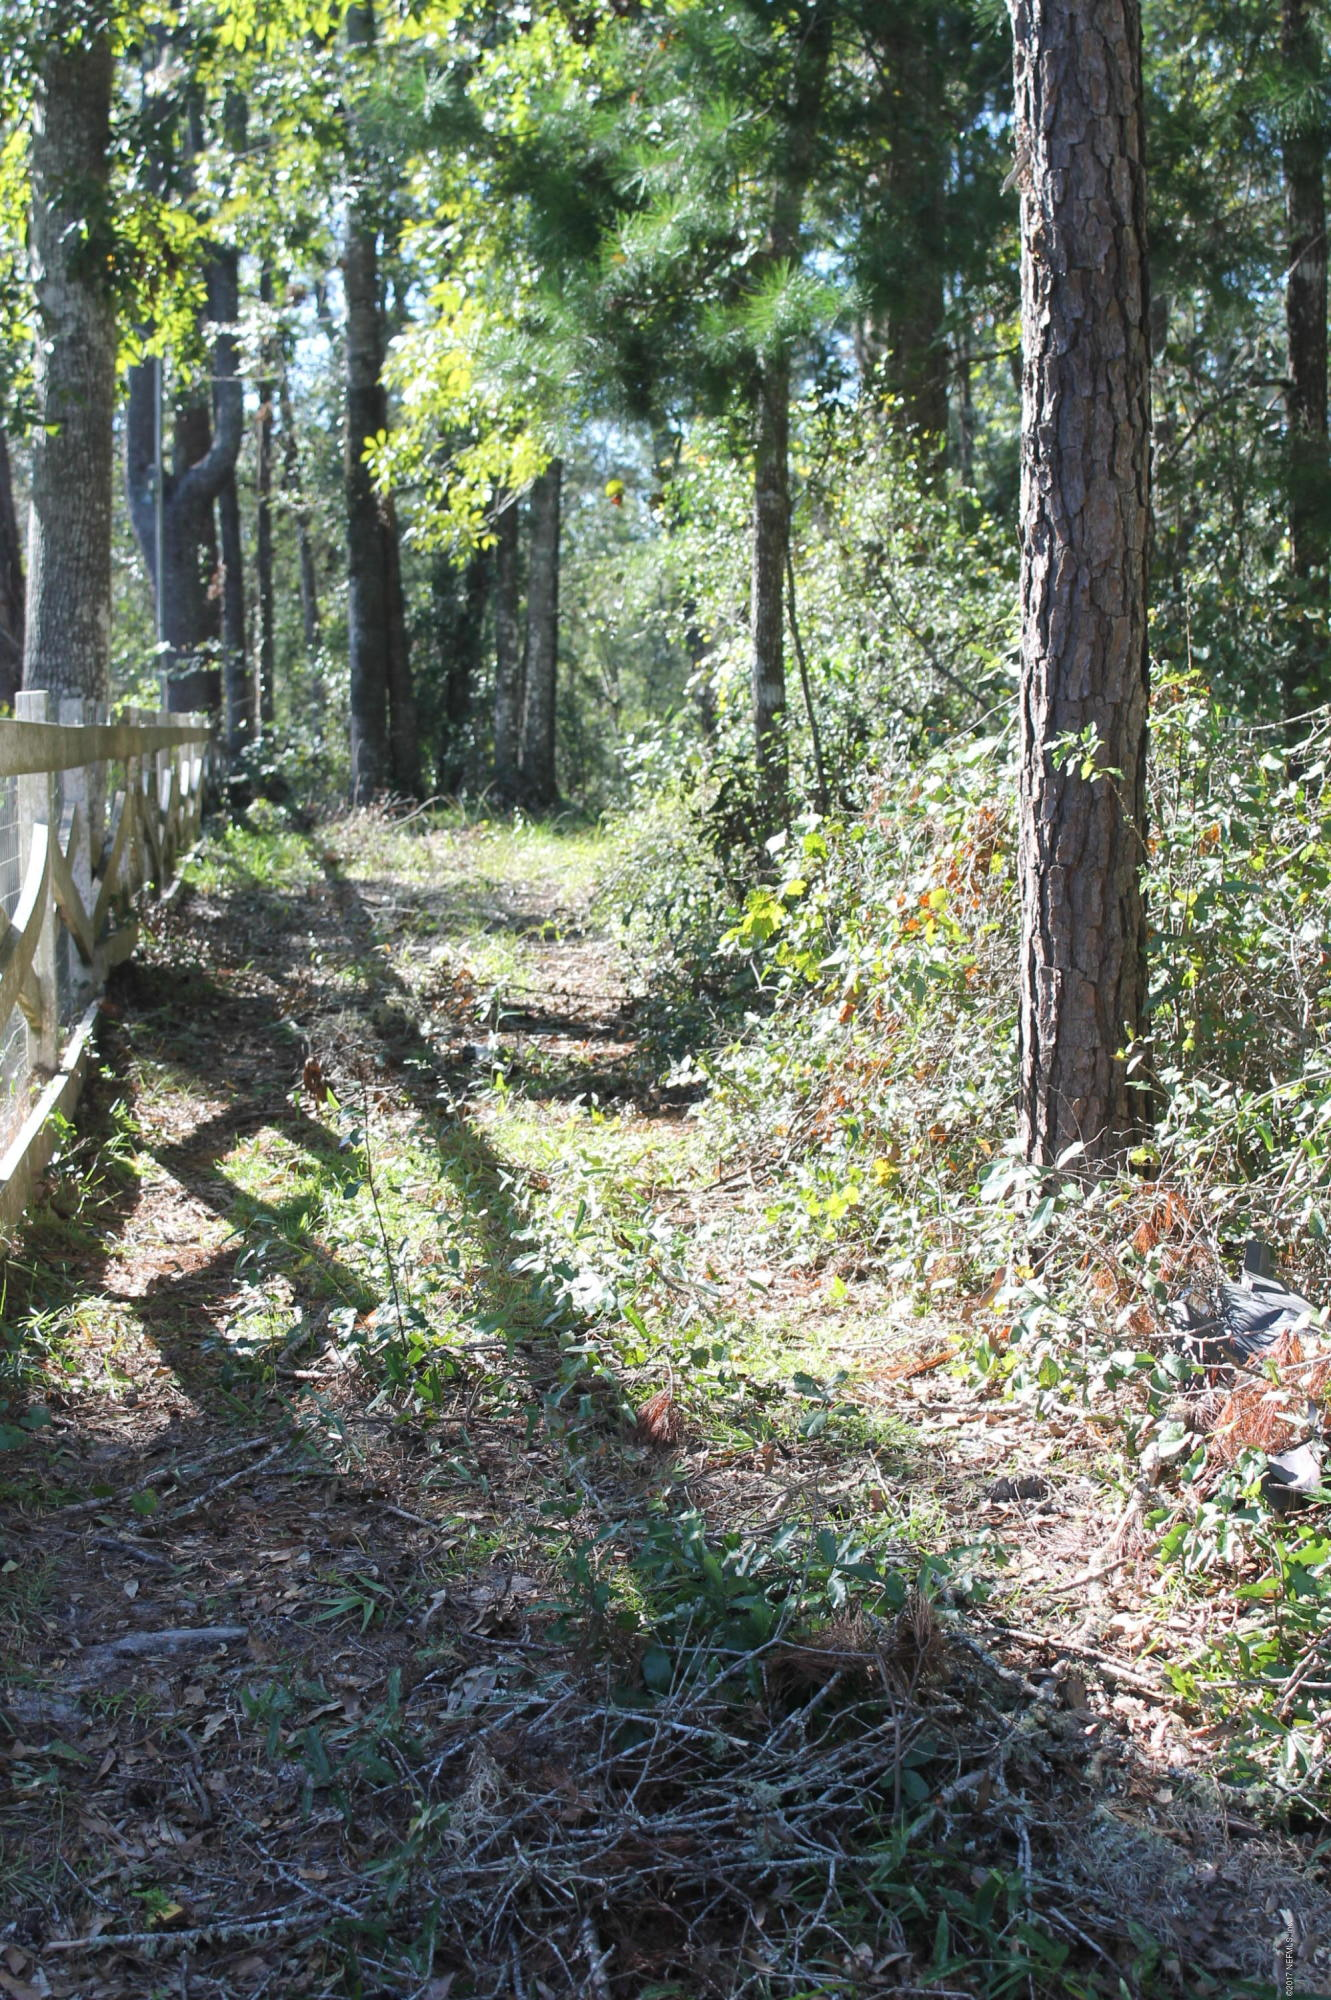 10526 MULBERRY LANDING, HILLIARD, FLORIDA 32046, ,Vacant land,For sale,MULBERRY LANDING,906680